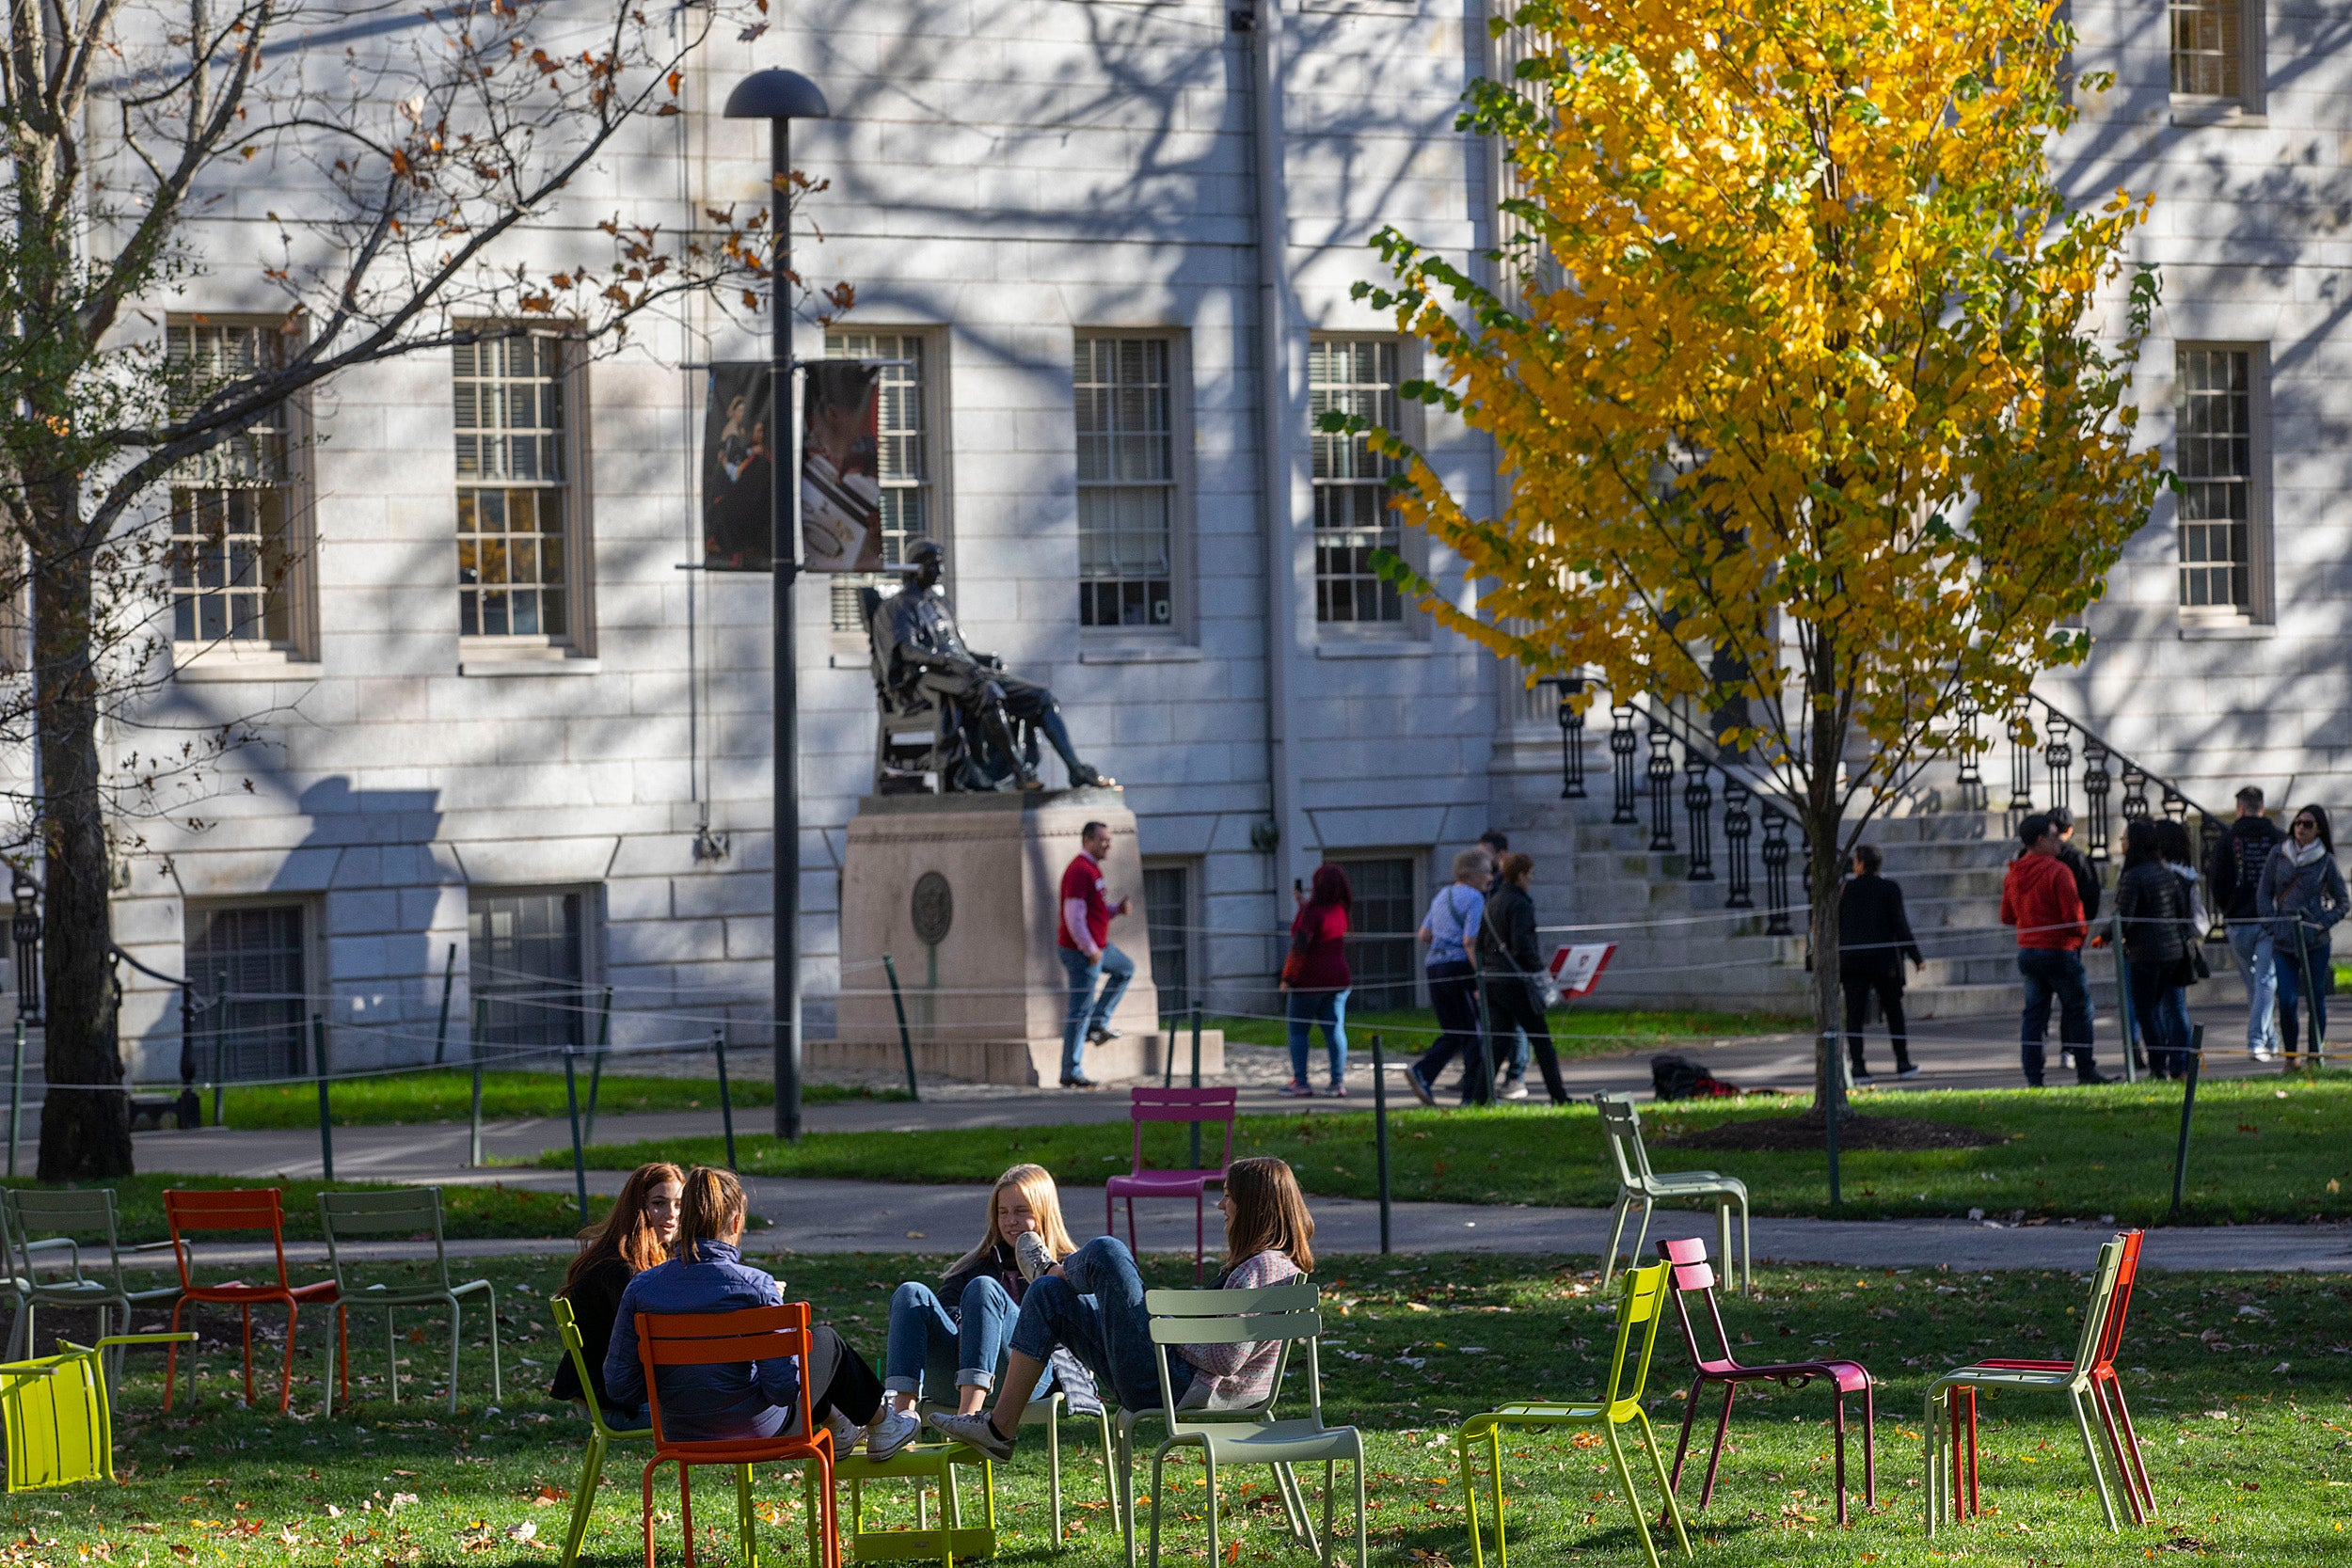 Harvard endowment to go greenhouse gas-neutral by 2050